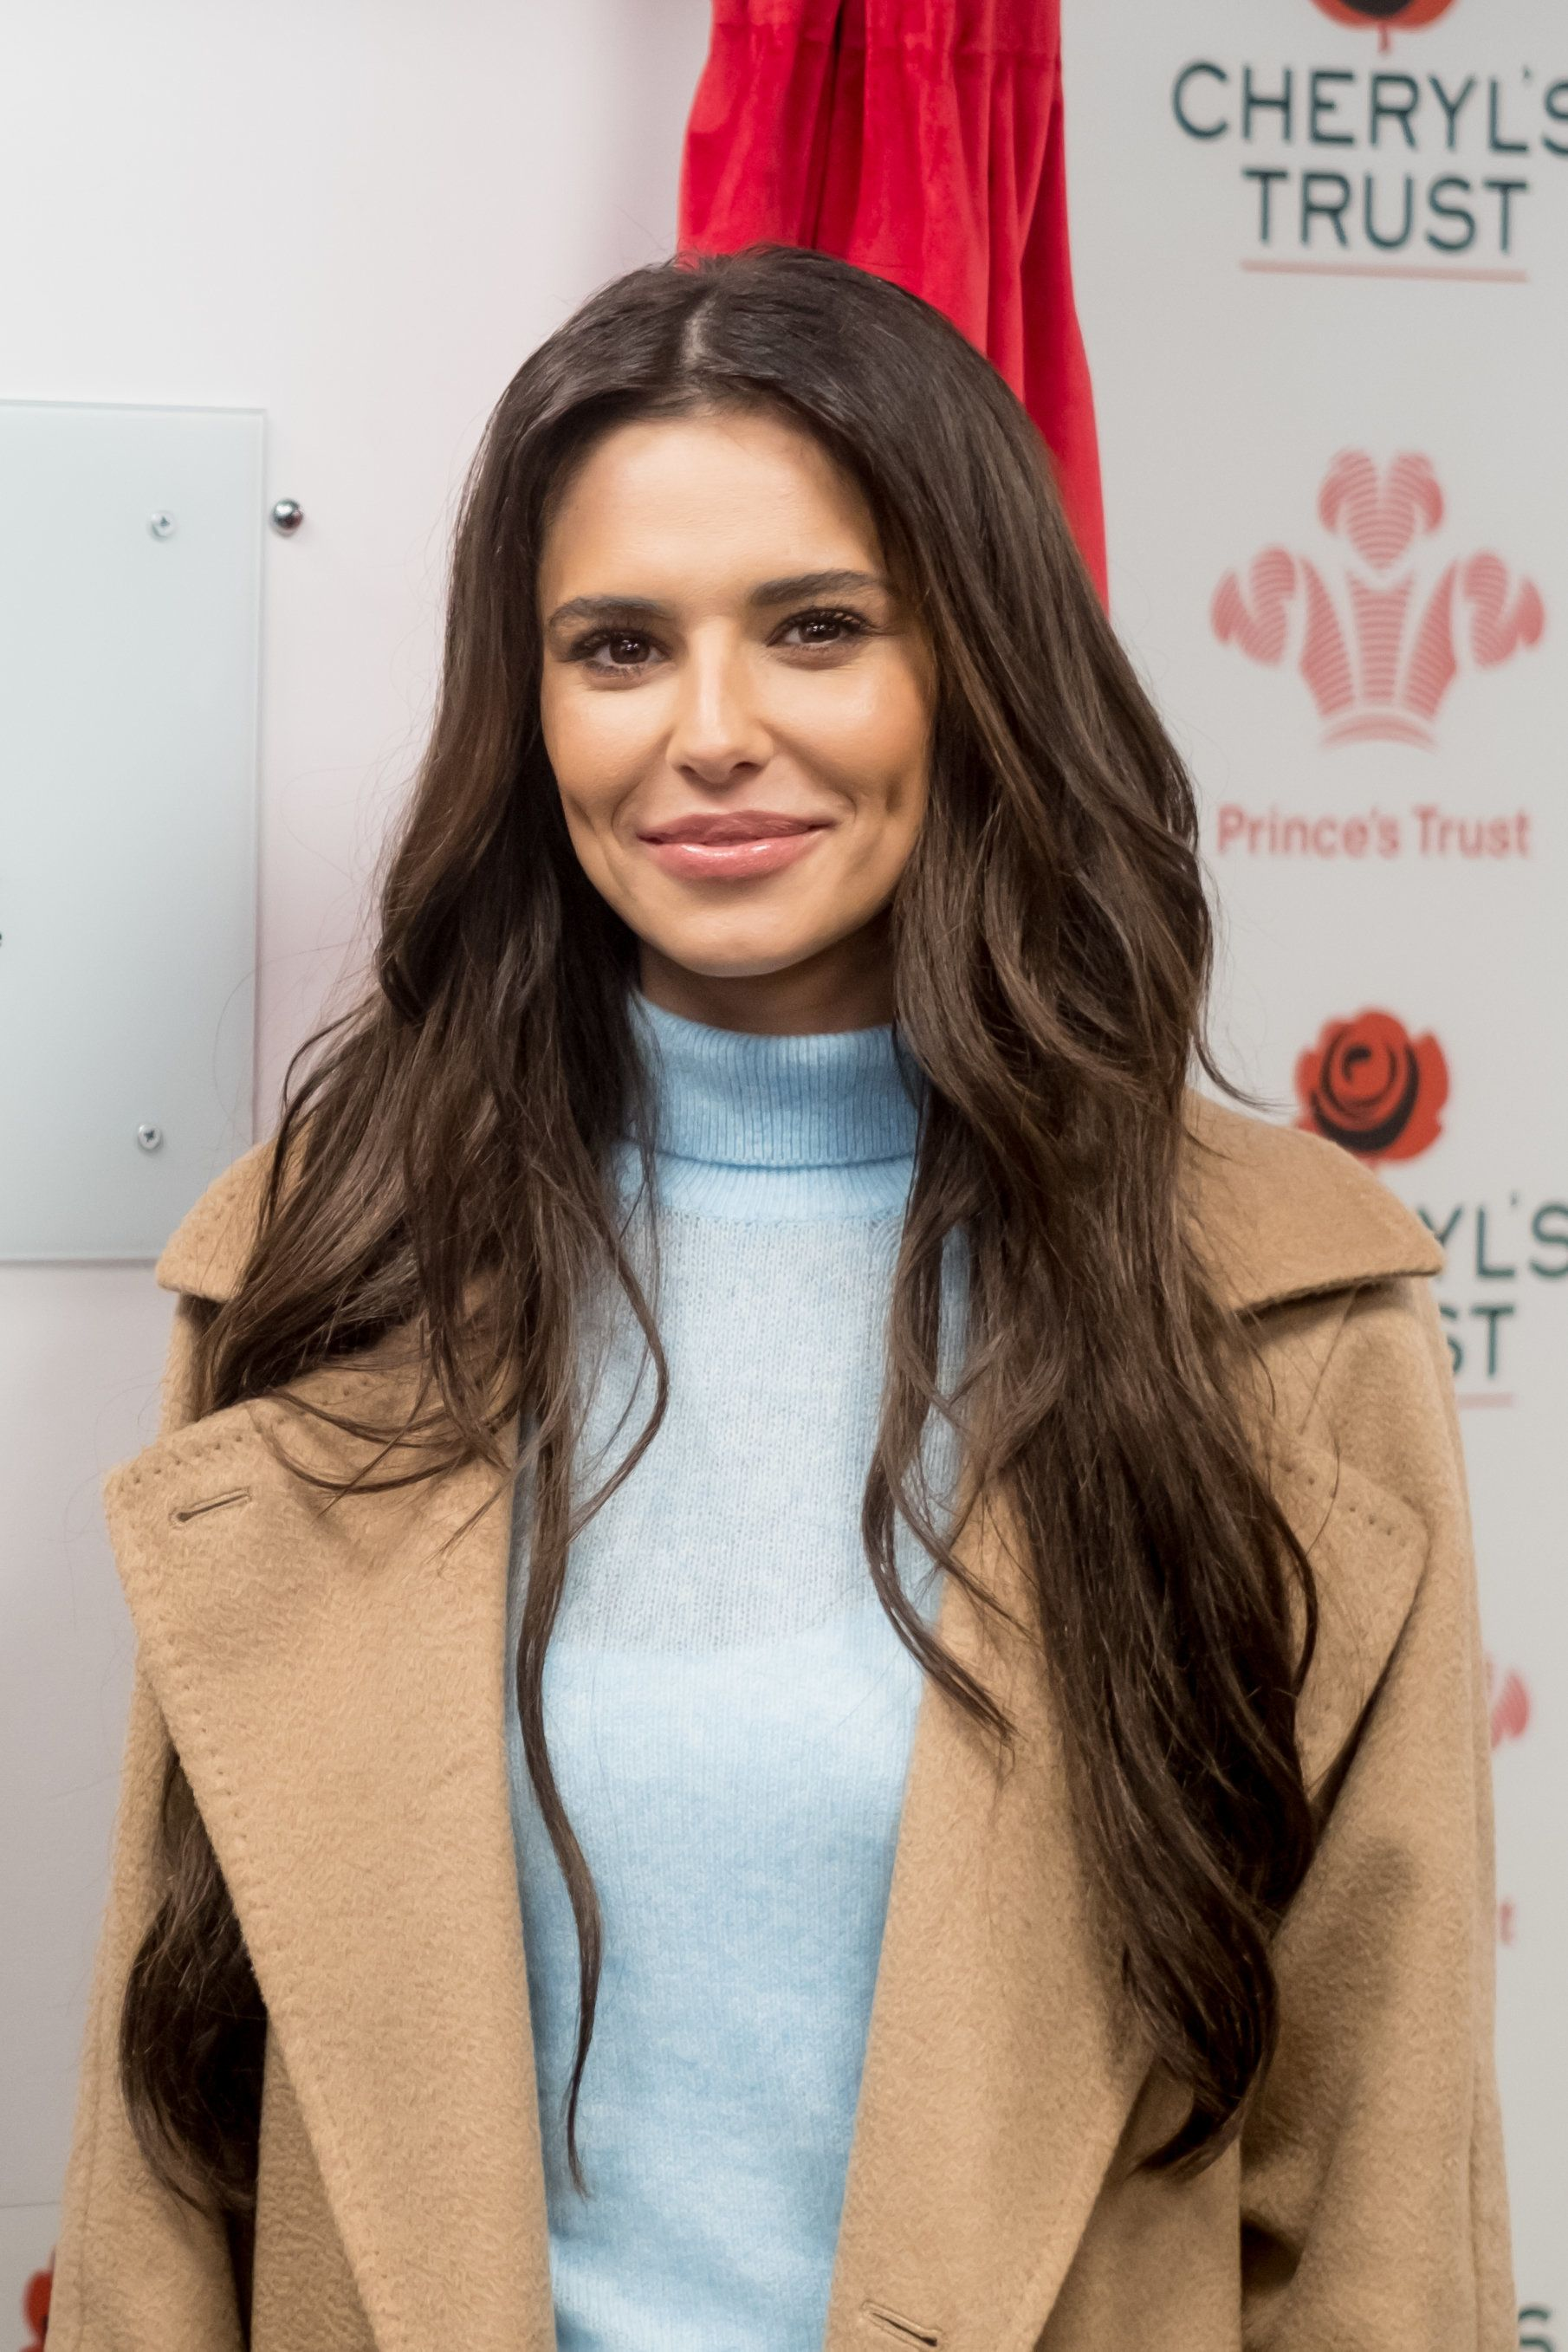 Cheryl Confirms New Music Is On The Way, As Ex Liam Payne Goes Public With New